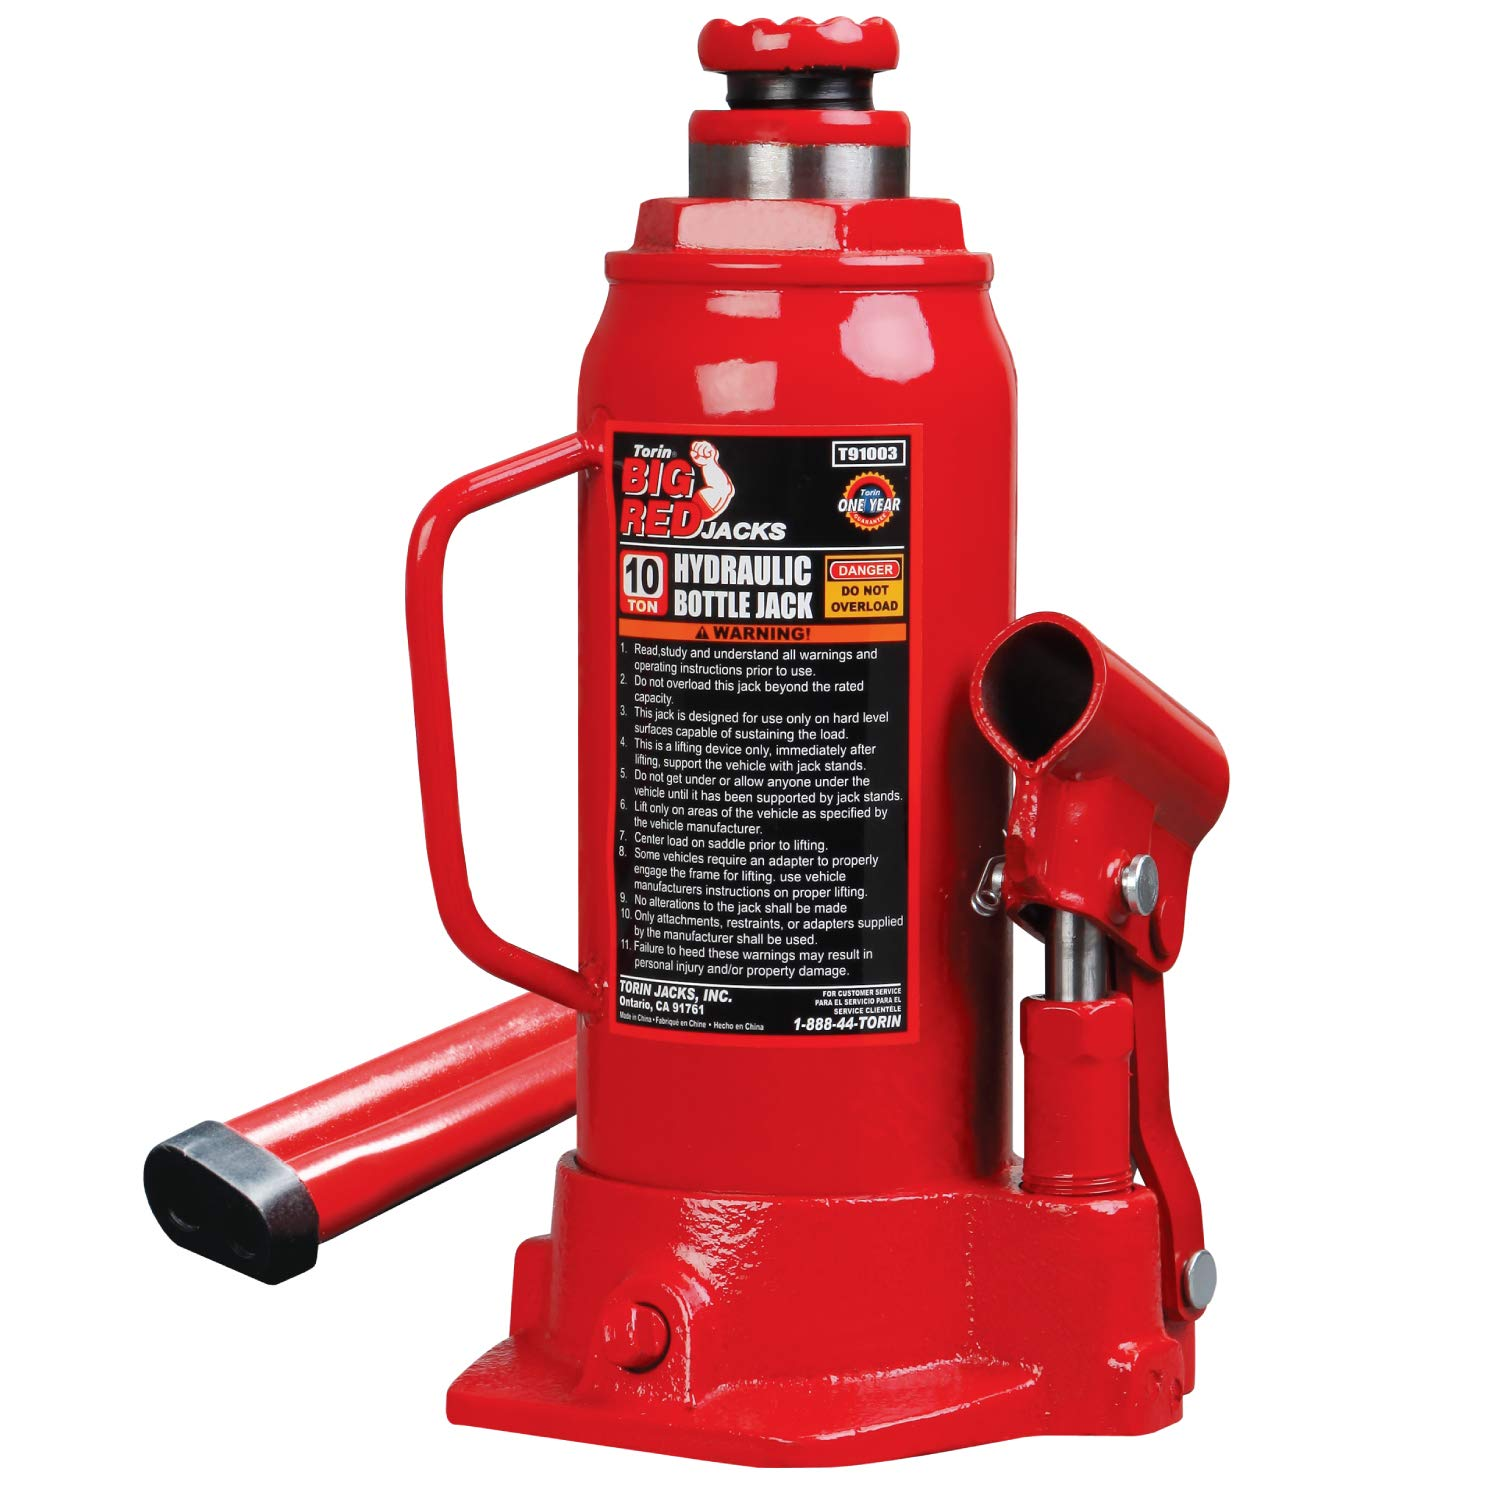 Torin Big Red Hydraulic Bottle Jack, 10 Ton Capacity by Torin